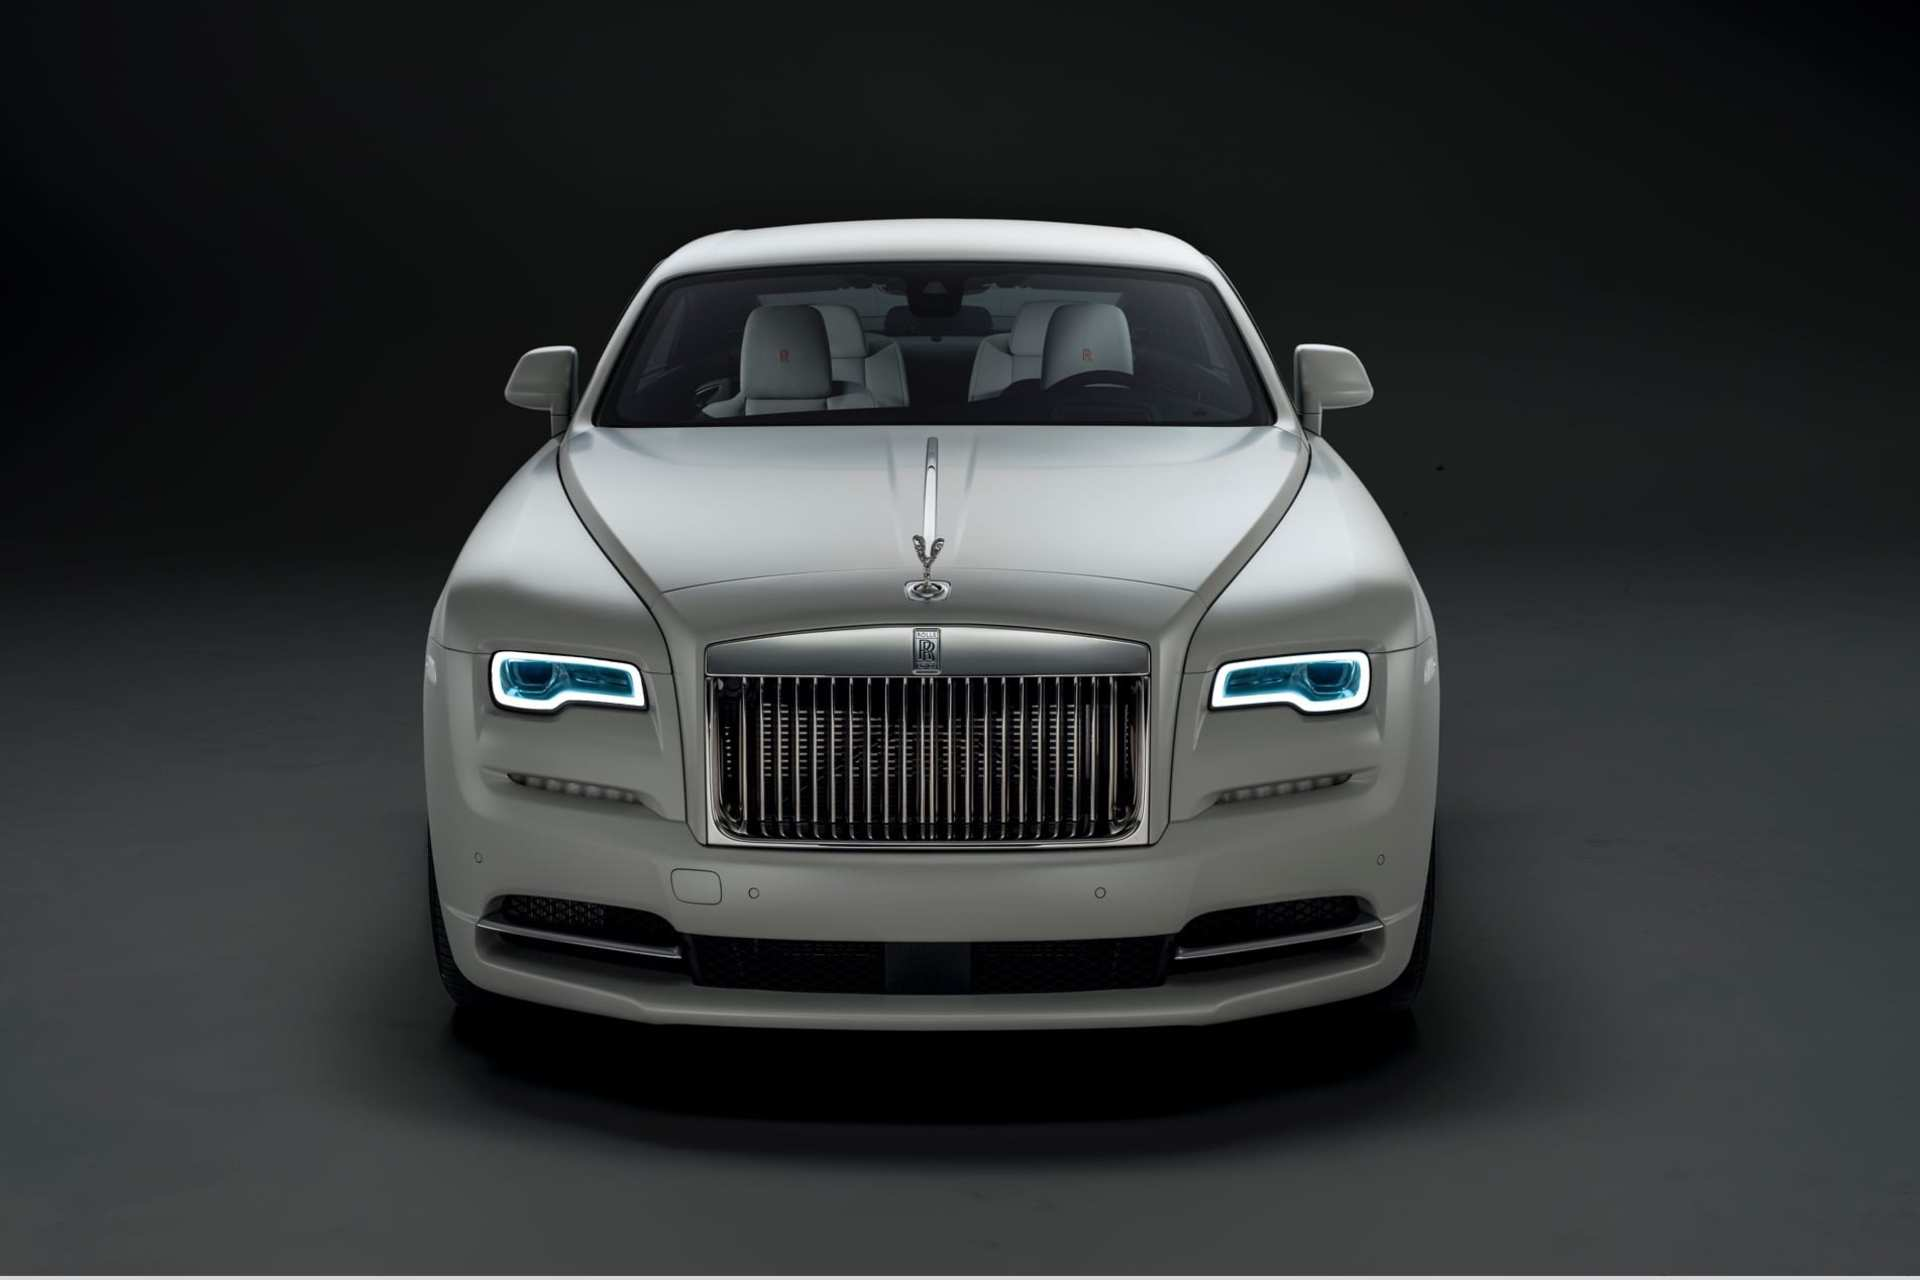 Rolls-Royce Wraith front angle view. Dark background, light car. Front headlights on